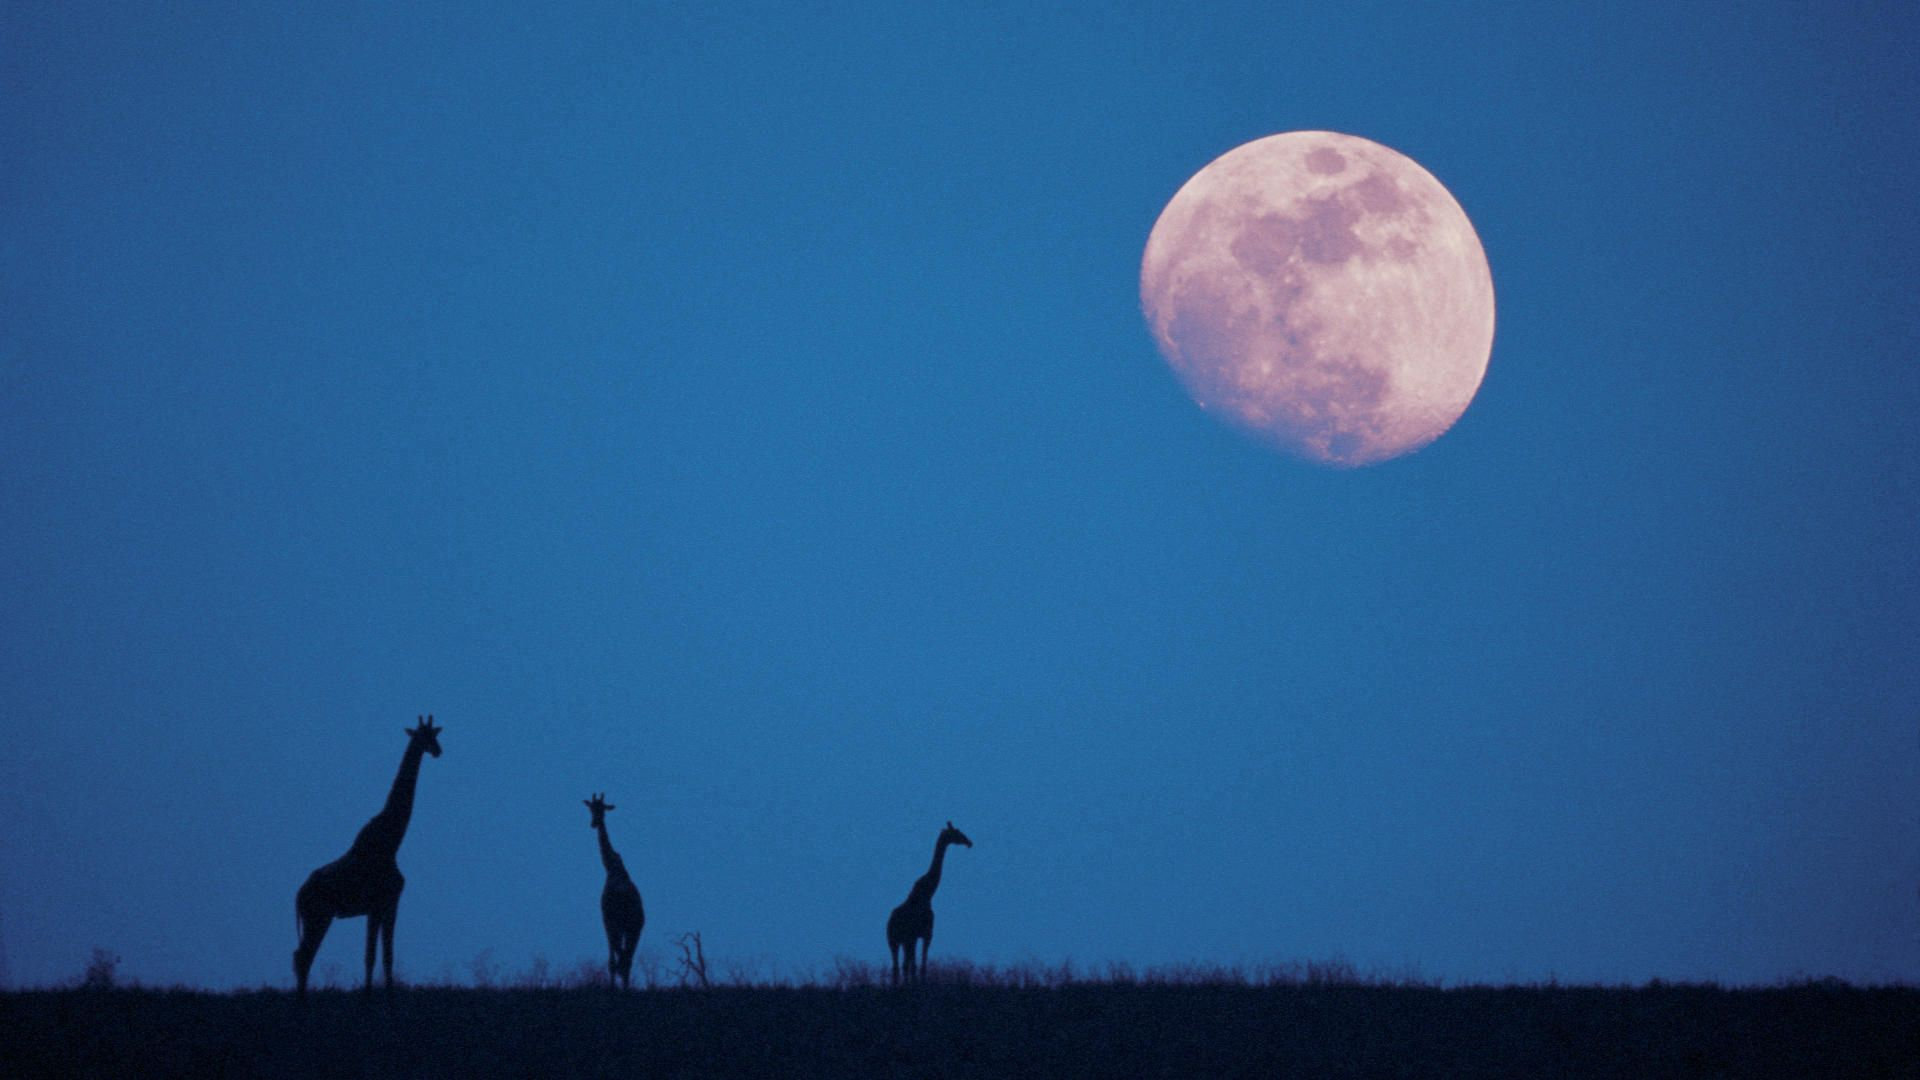 84779 download wallpaper Nature, Moon, Silhouettes, Dusk, Twilight, Giraffes screensavers and pictures for free